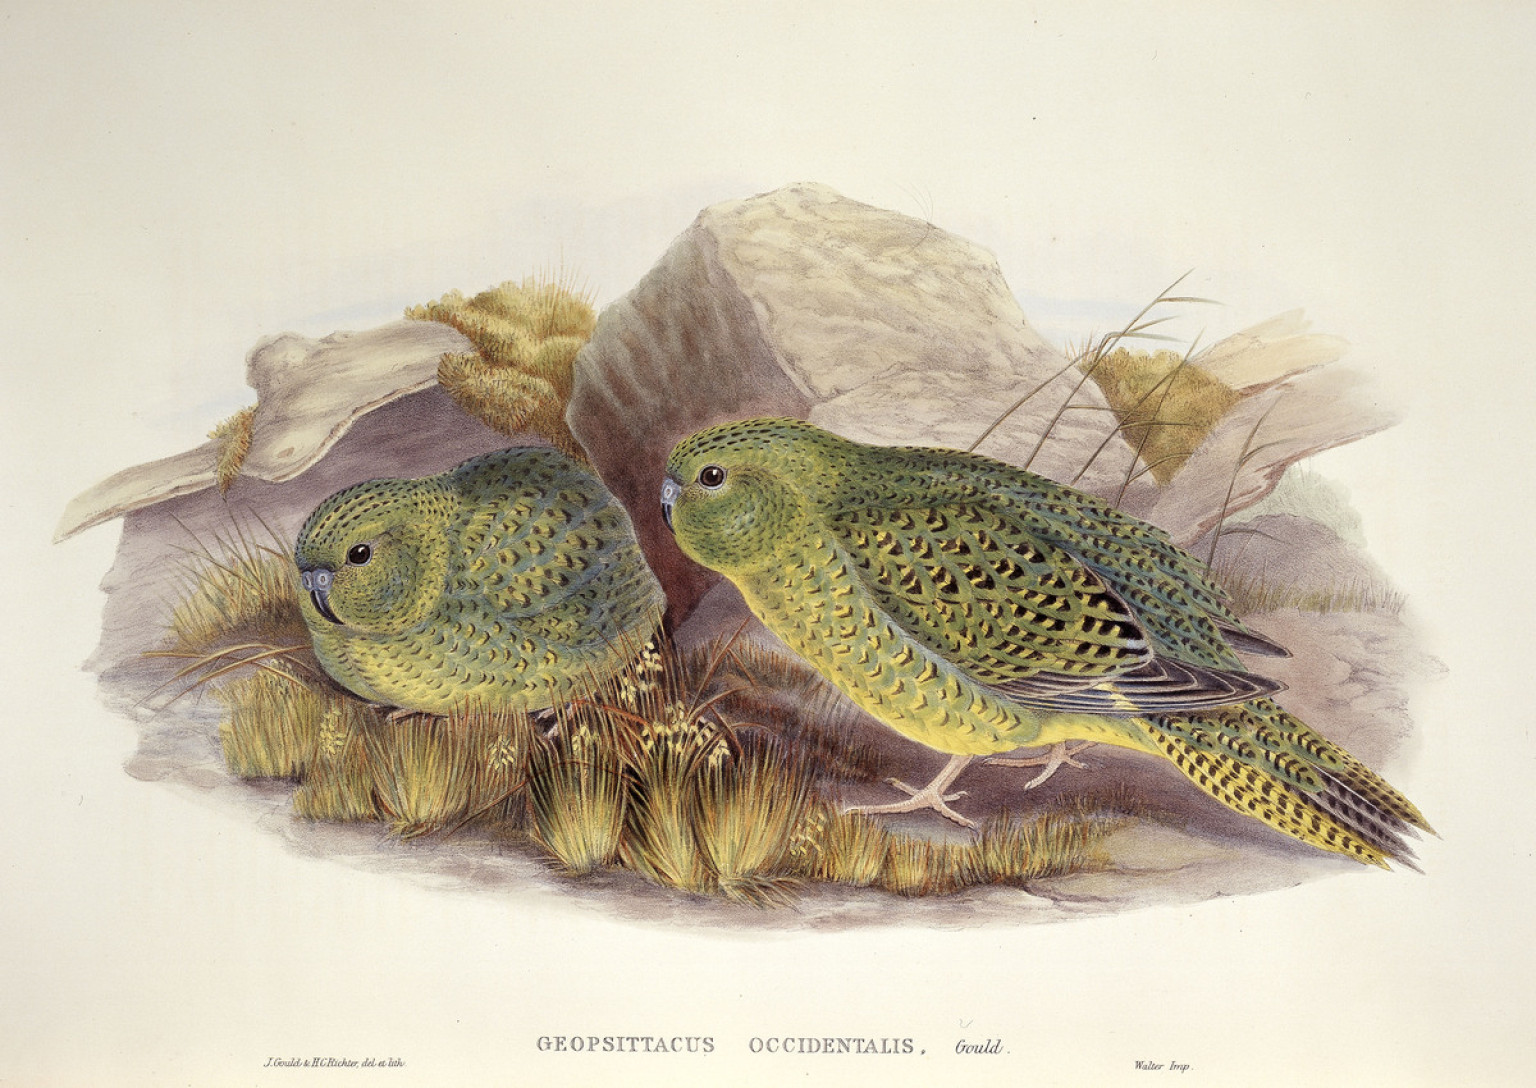 Night Parrot Nocturnal Bird In Australia Seen Alive For